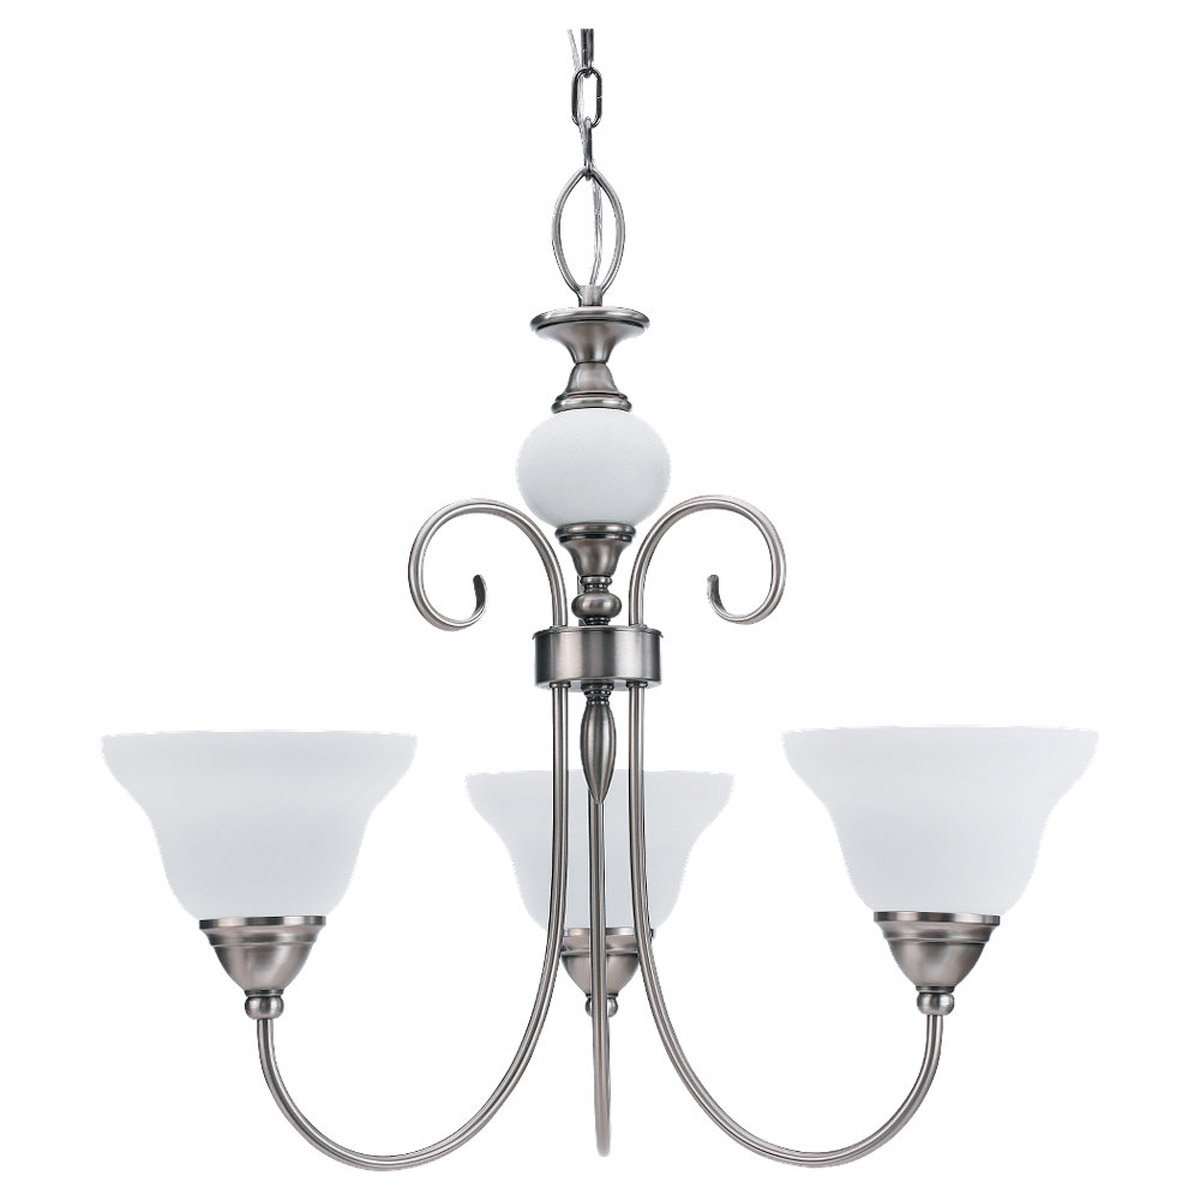 Sea Gull Lighting Montclaire 3 Light Chandelier in Antique Brushed Nickel 31105BLE-965 photo